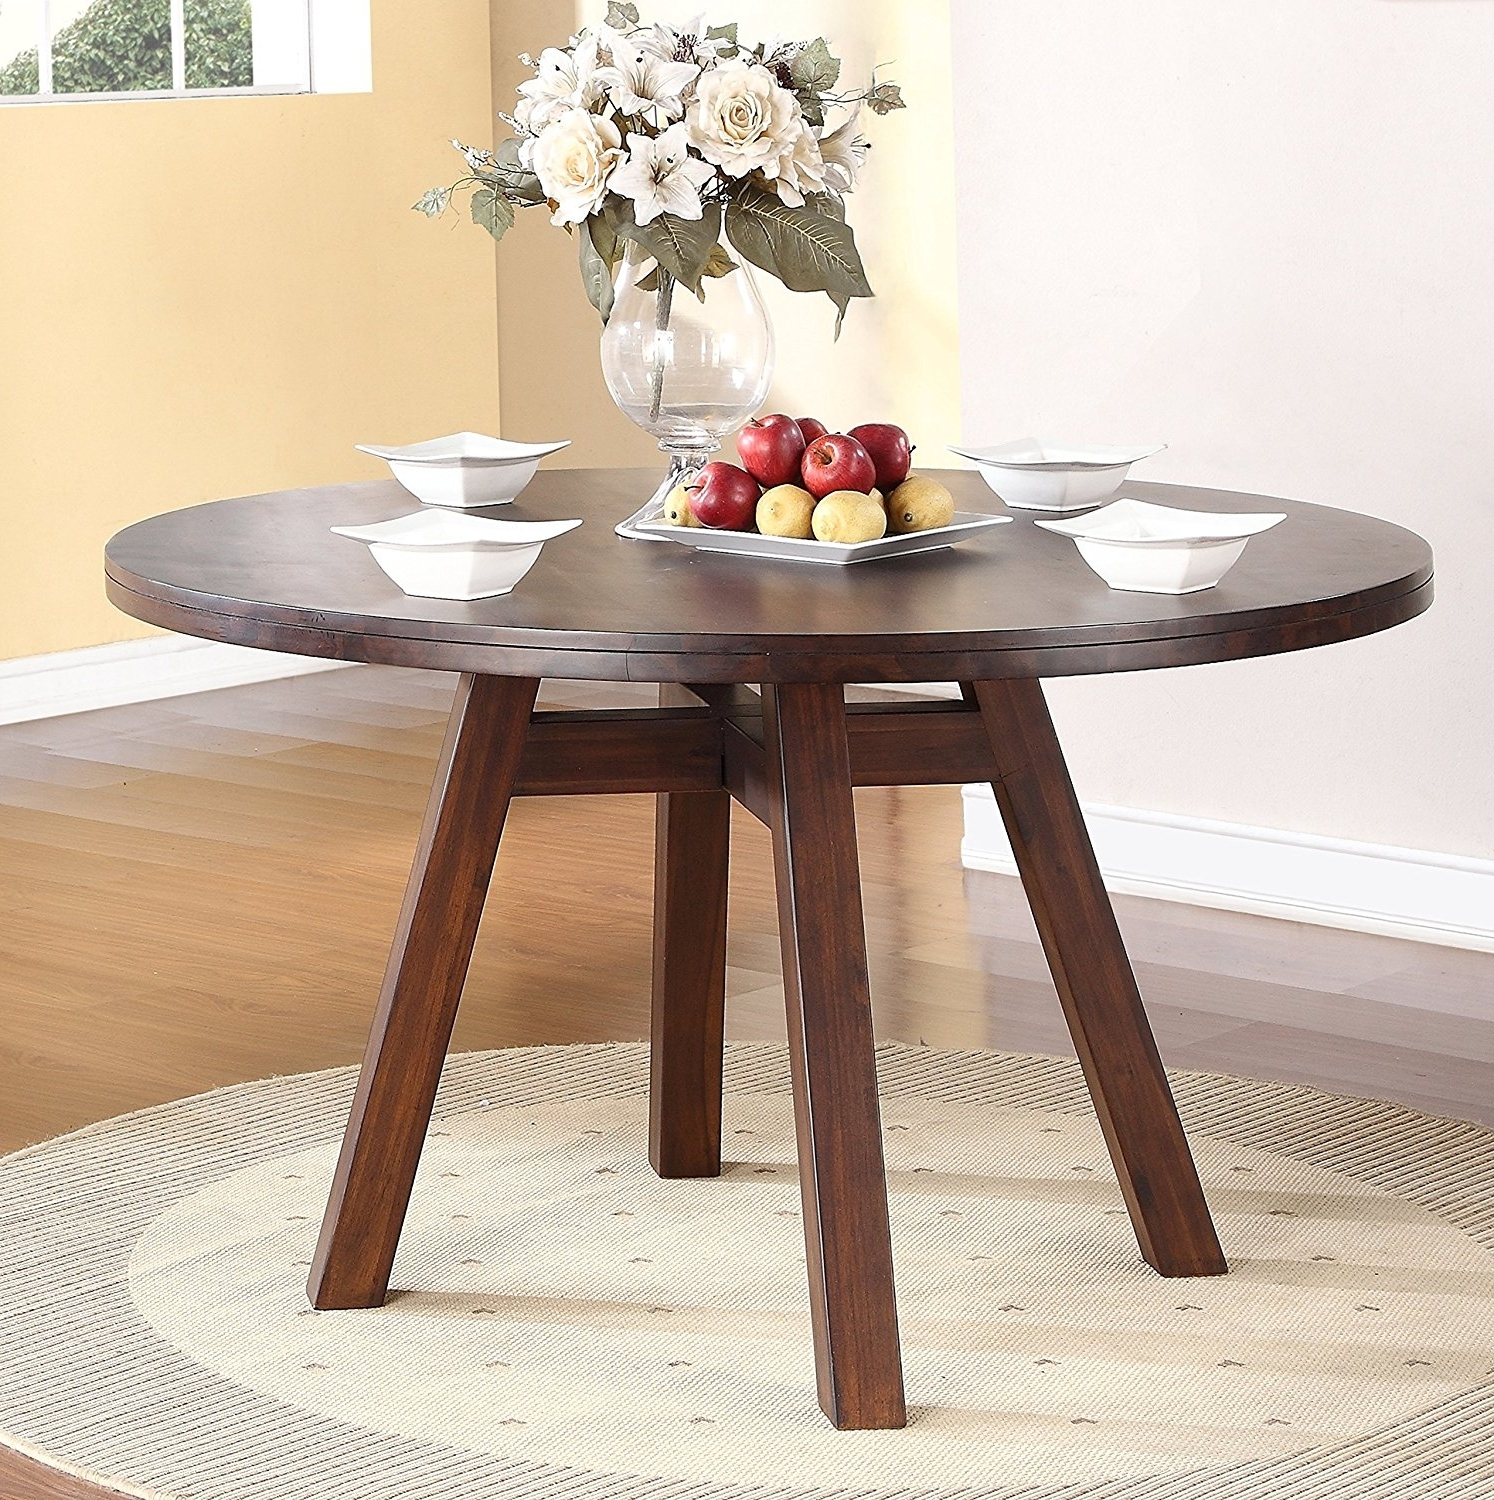 Latest Portland Dining Tables Regarding Portland Solid Wood Round Dining Table In Walnut – Shop For (View 7 of 25)